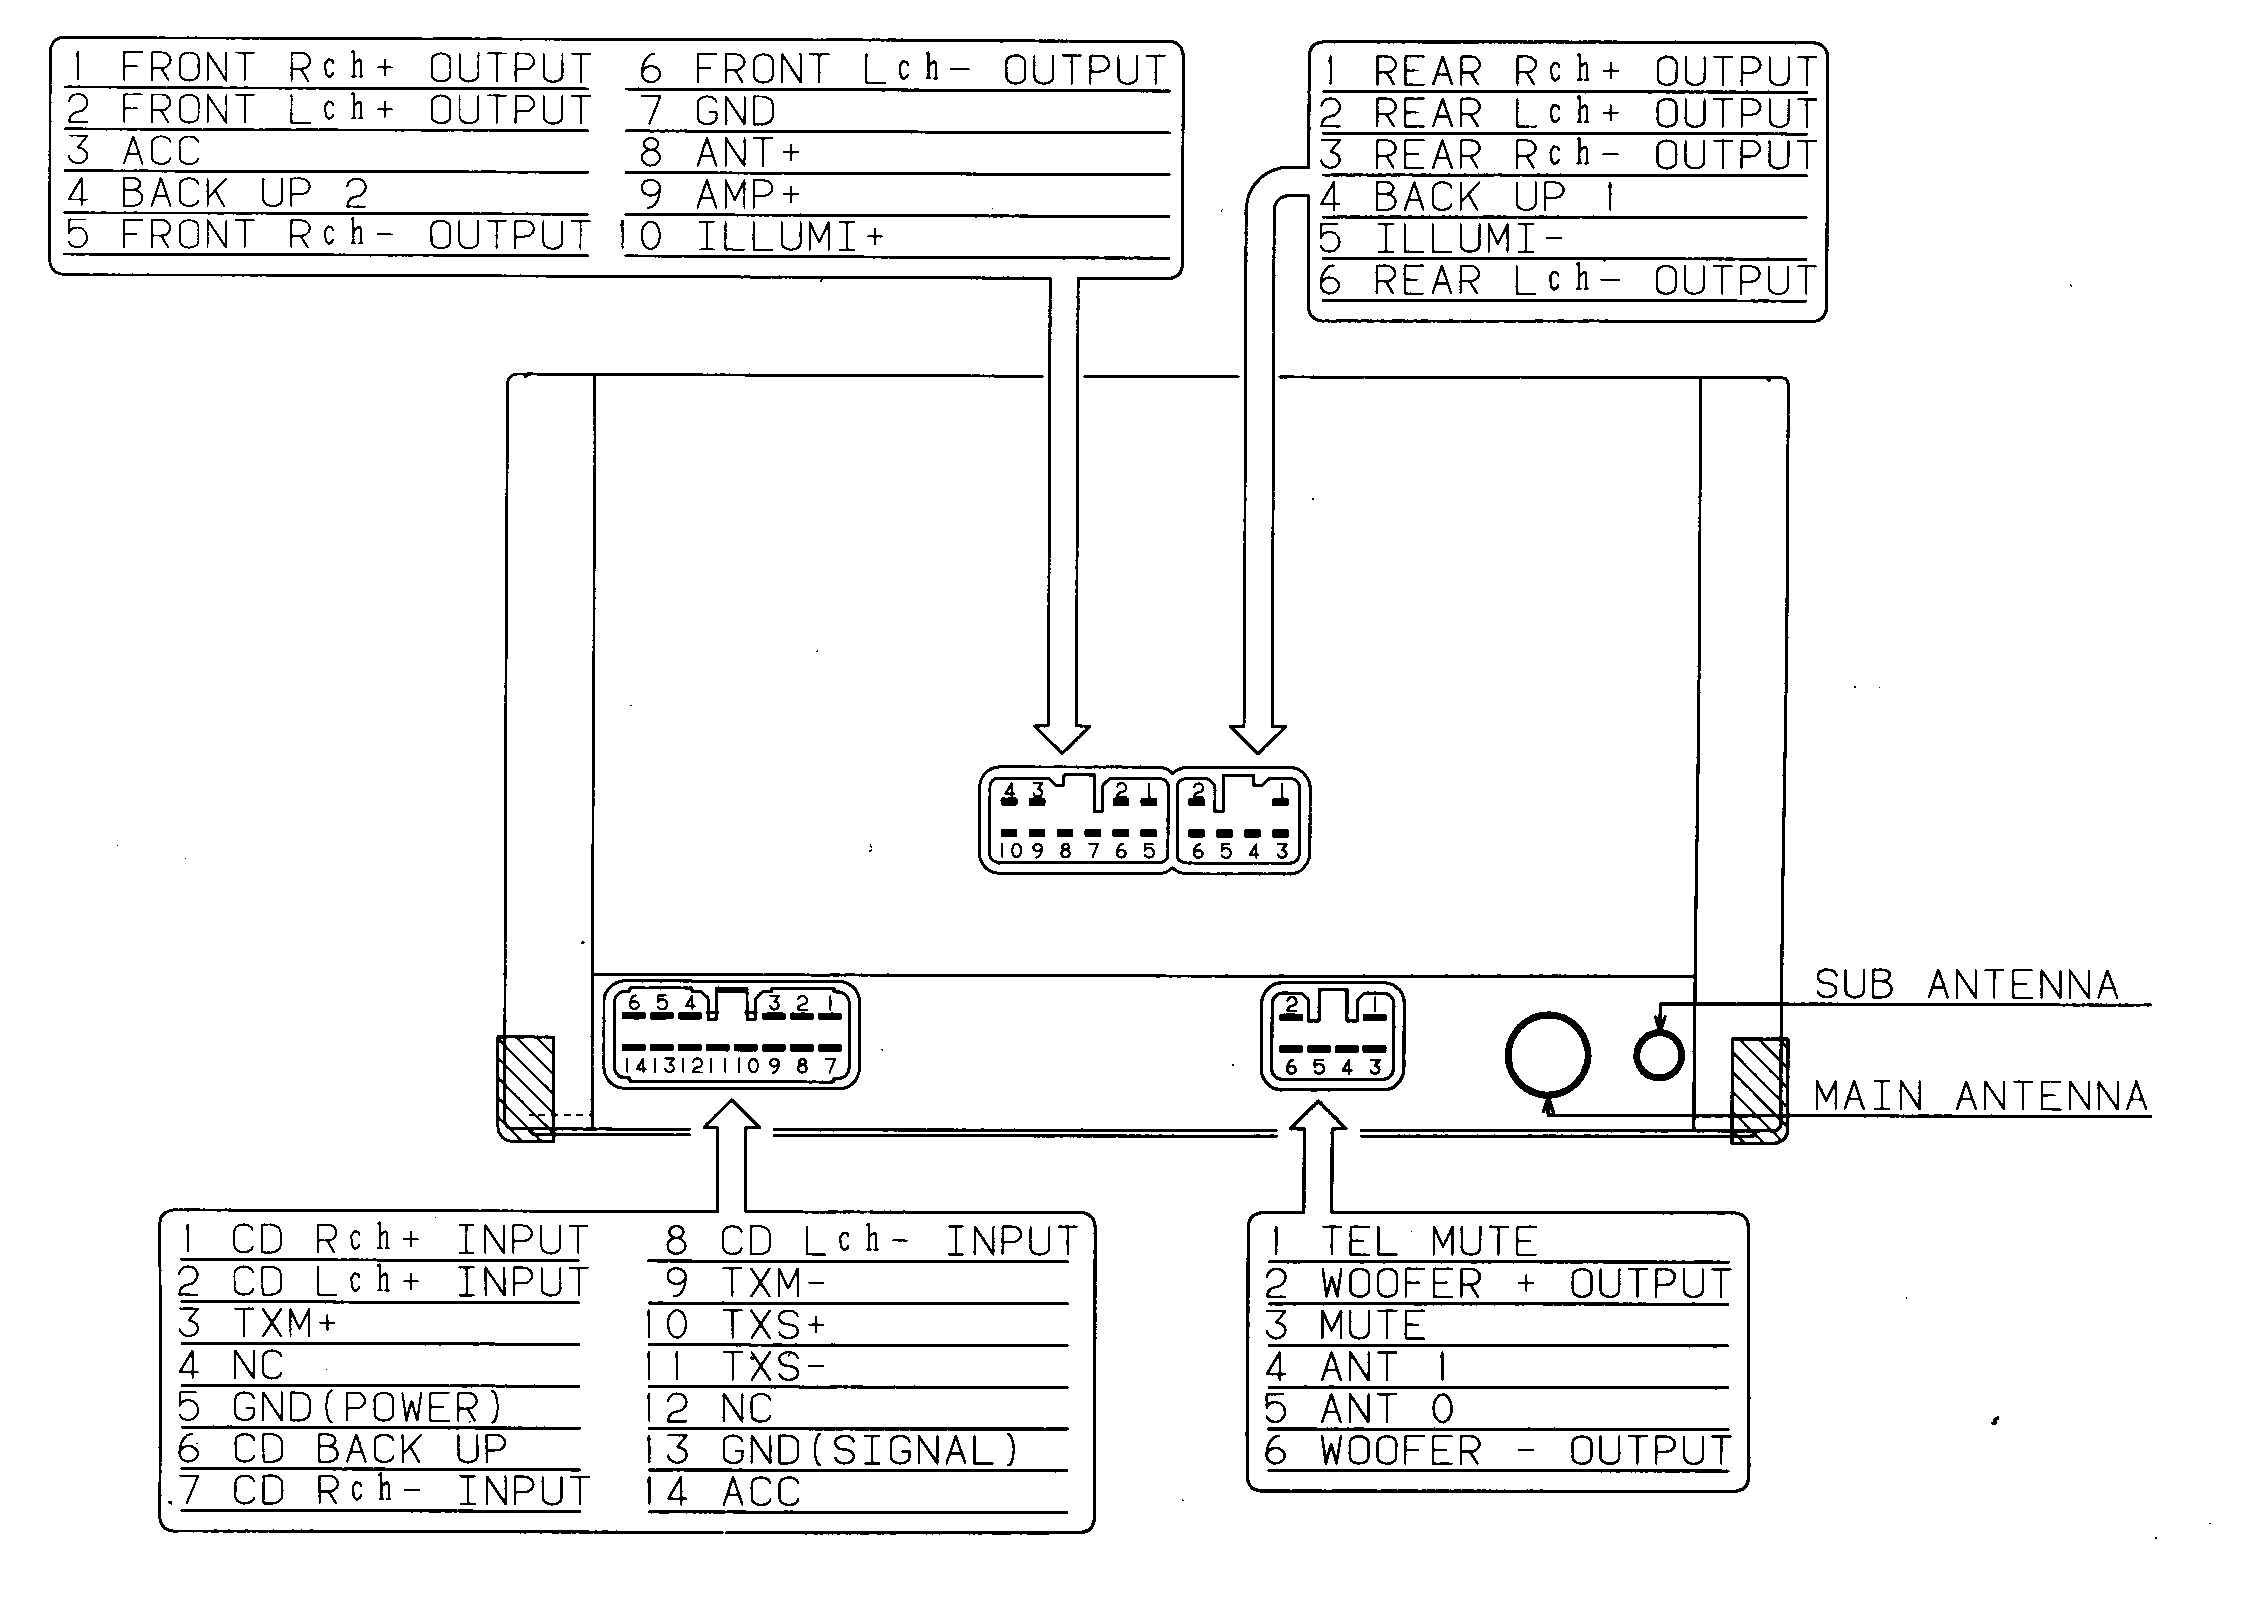 lexus car radio stereo audio wiring diagram autoradio connector wire installation schematic car stereo wiring diagram boss car stereo wiring diagram